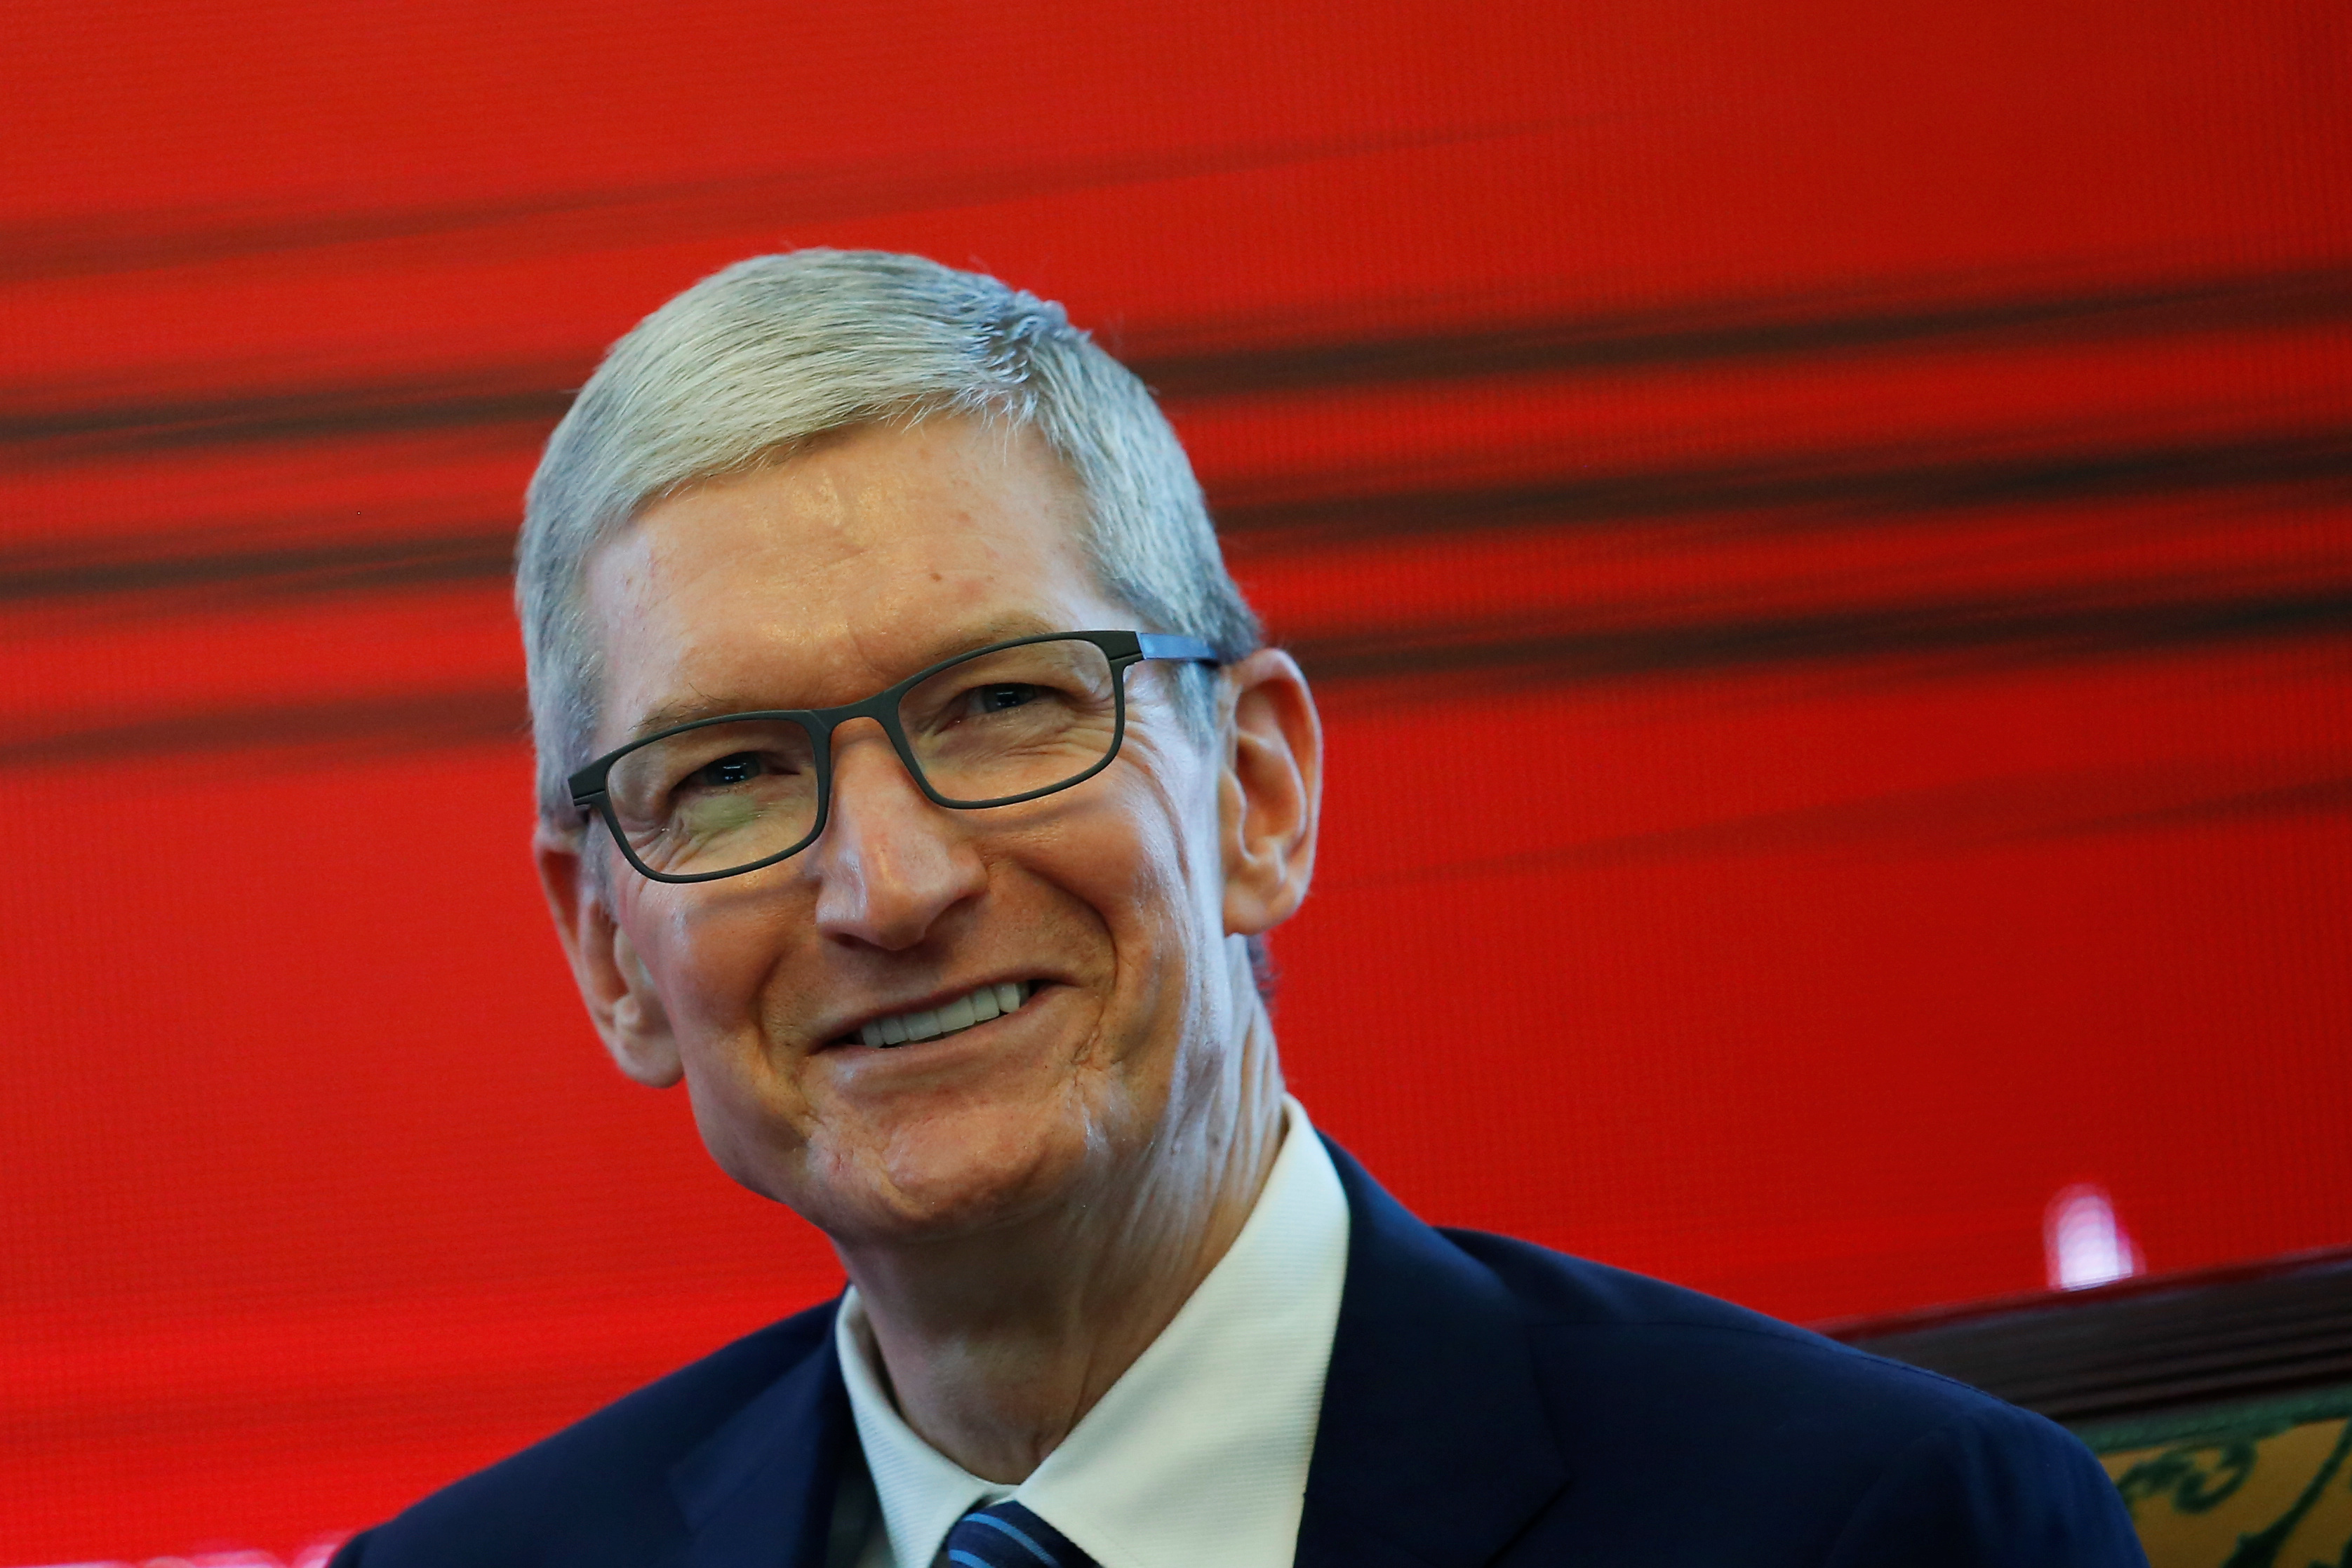 Apple CEO Tim Cook attends the China Development Forum in Beijing